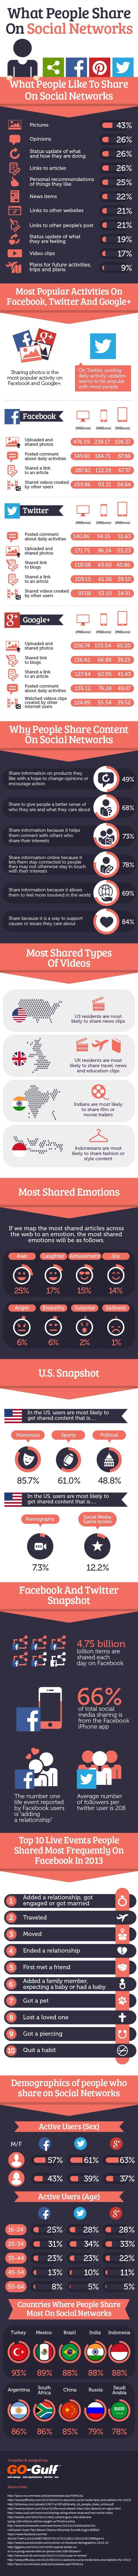 What People Like To Share On Social Networks #infographic #people #socialmedia